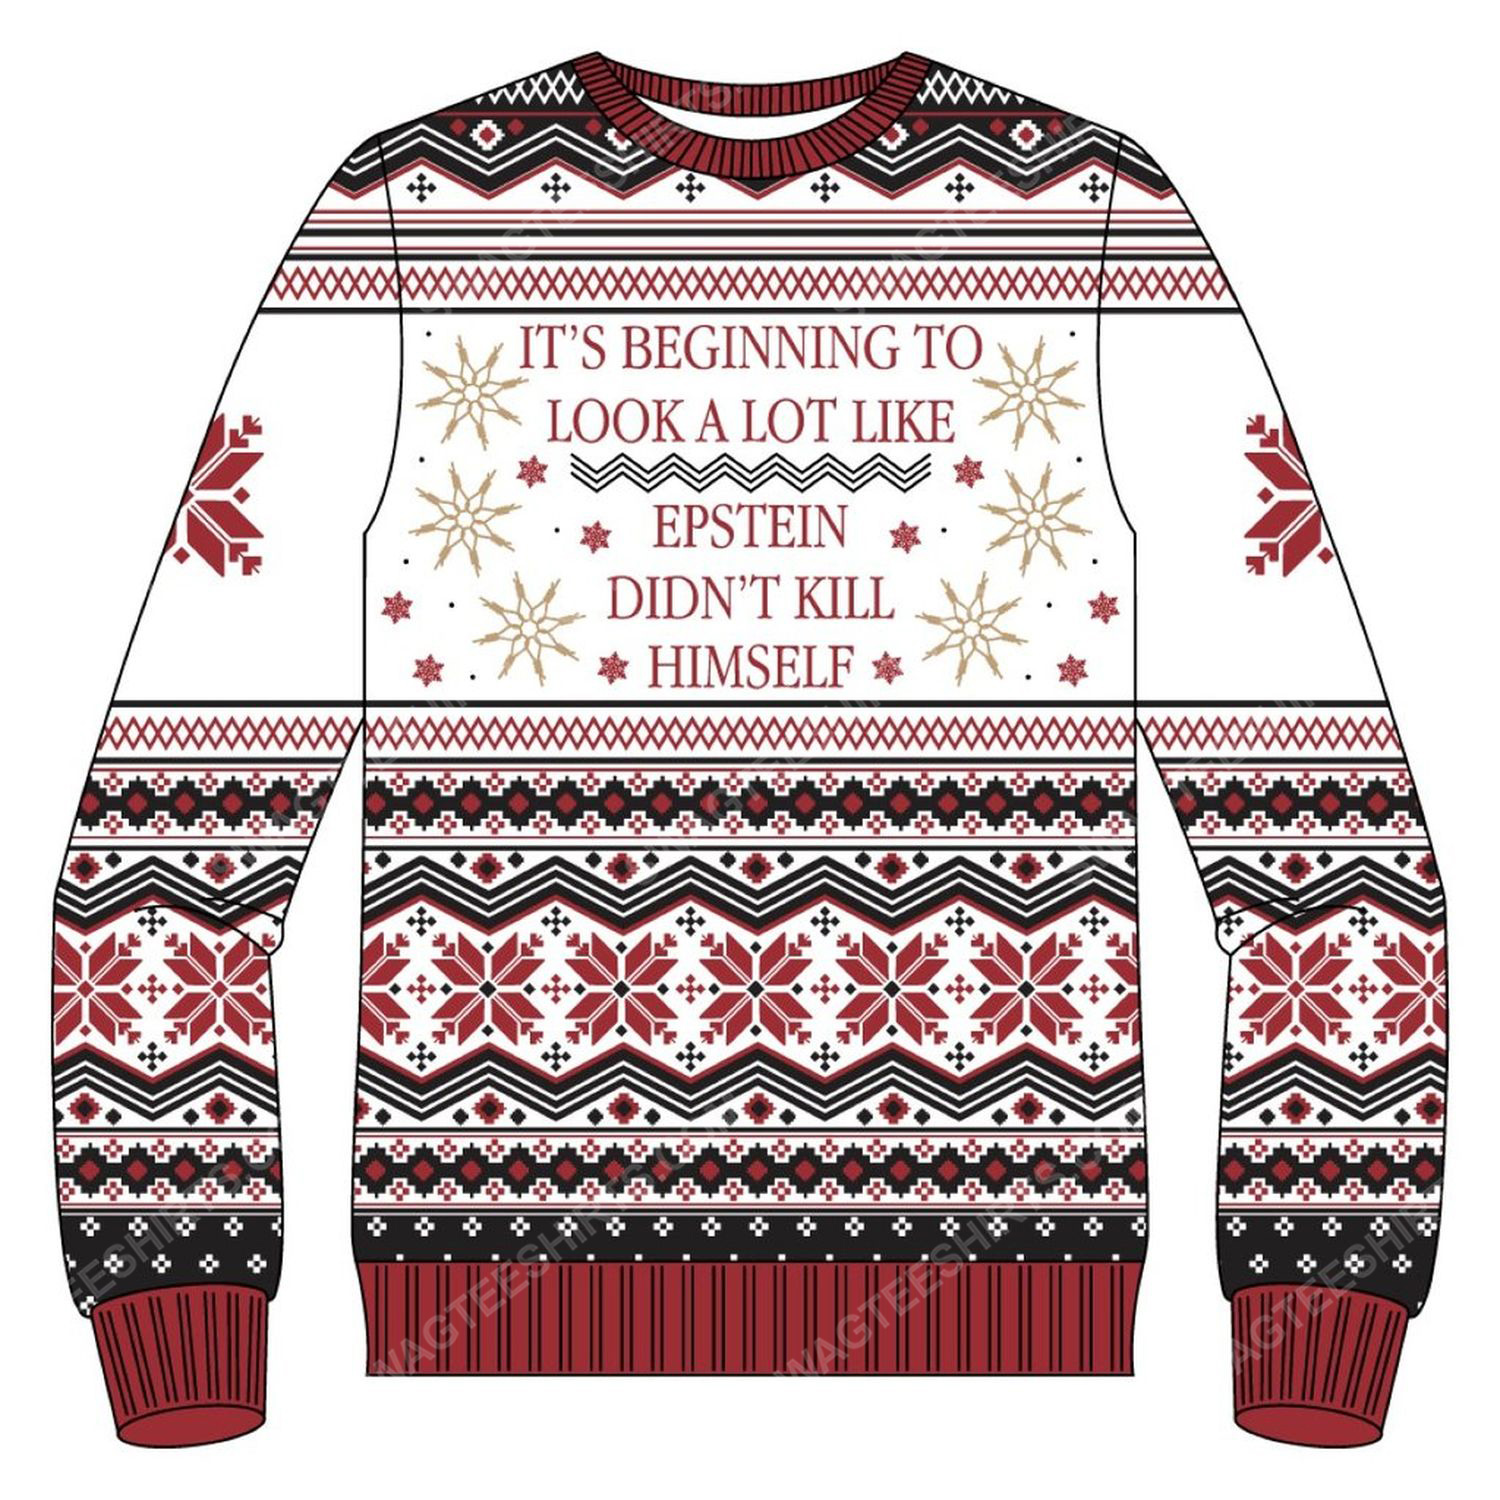 It's beginning to look a lot like epstein didn't kill himself ugly christmas sweater 2 - Copy (2)